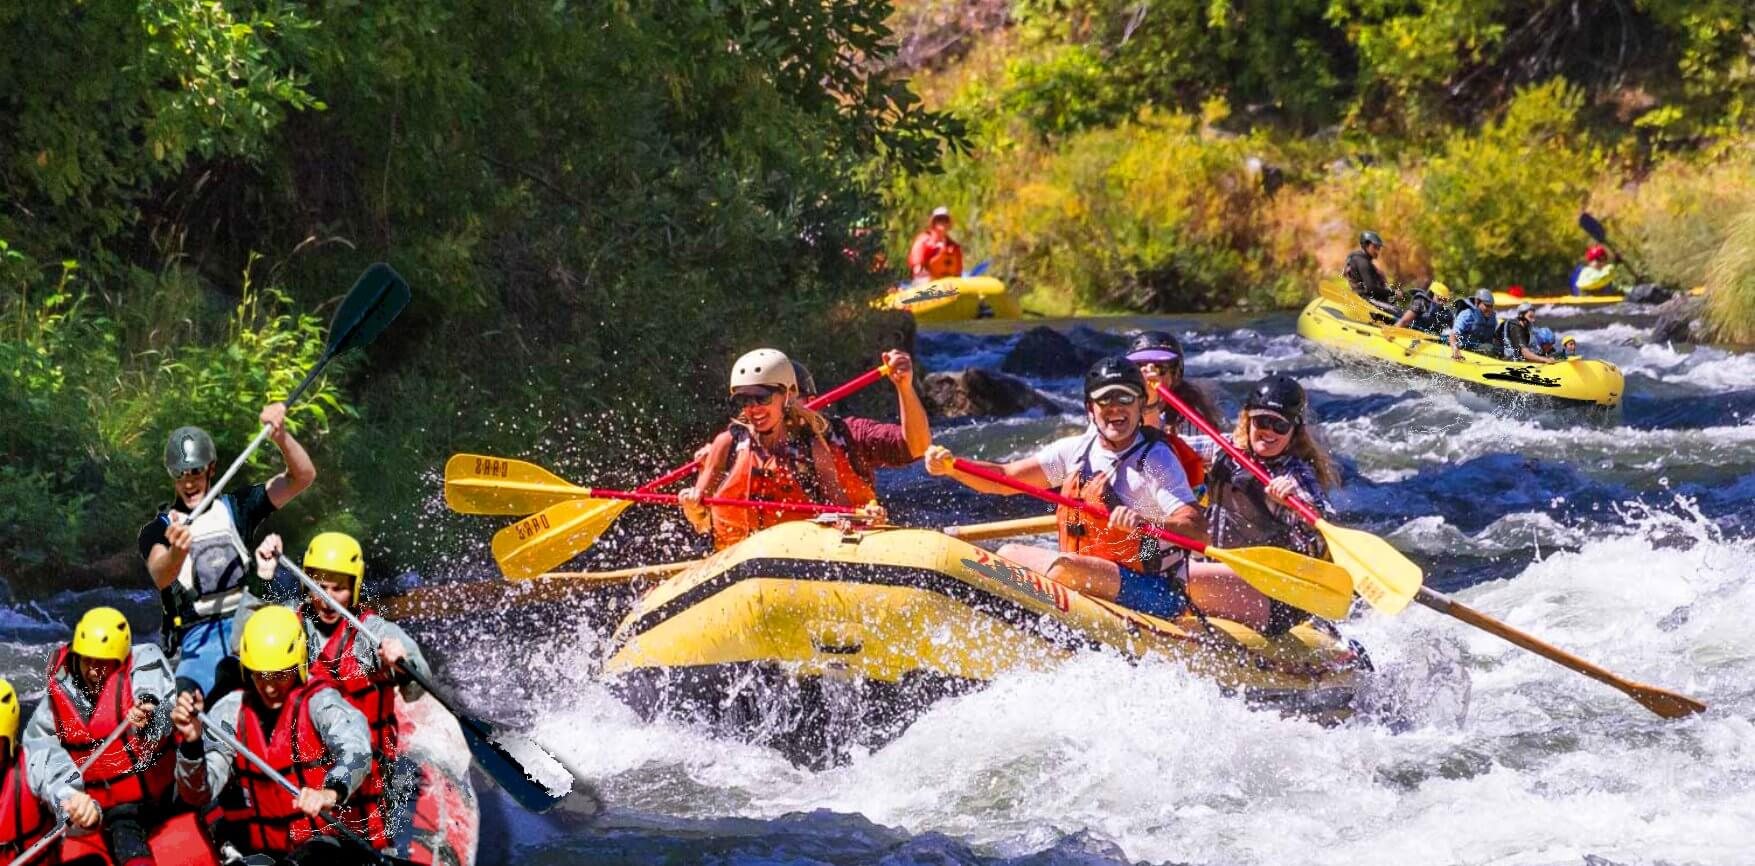 american_river_rafting_day_trip_adventure_from_san_francisco